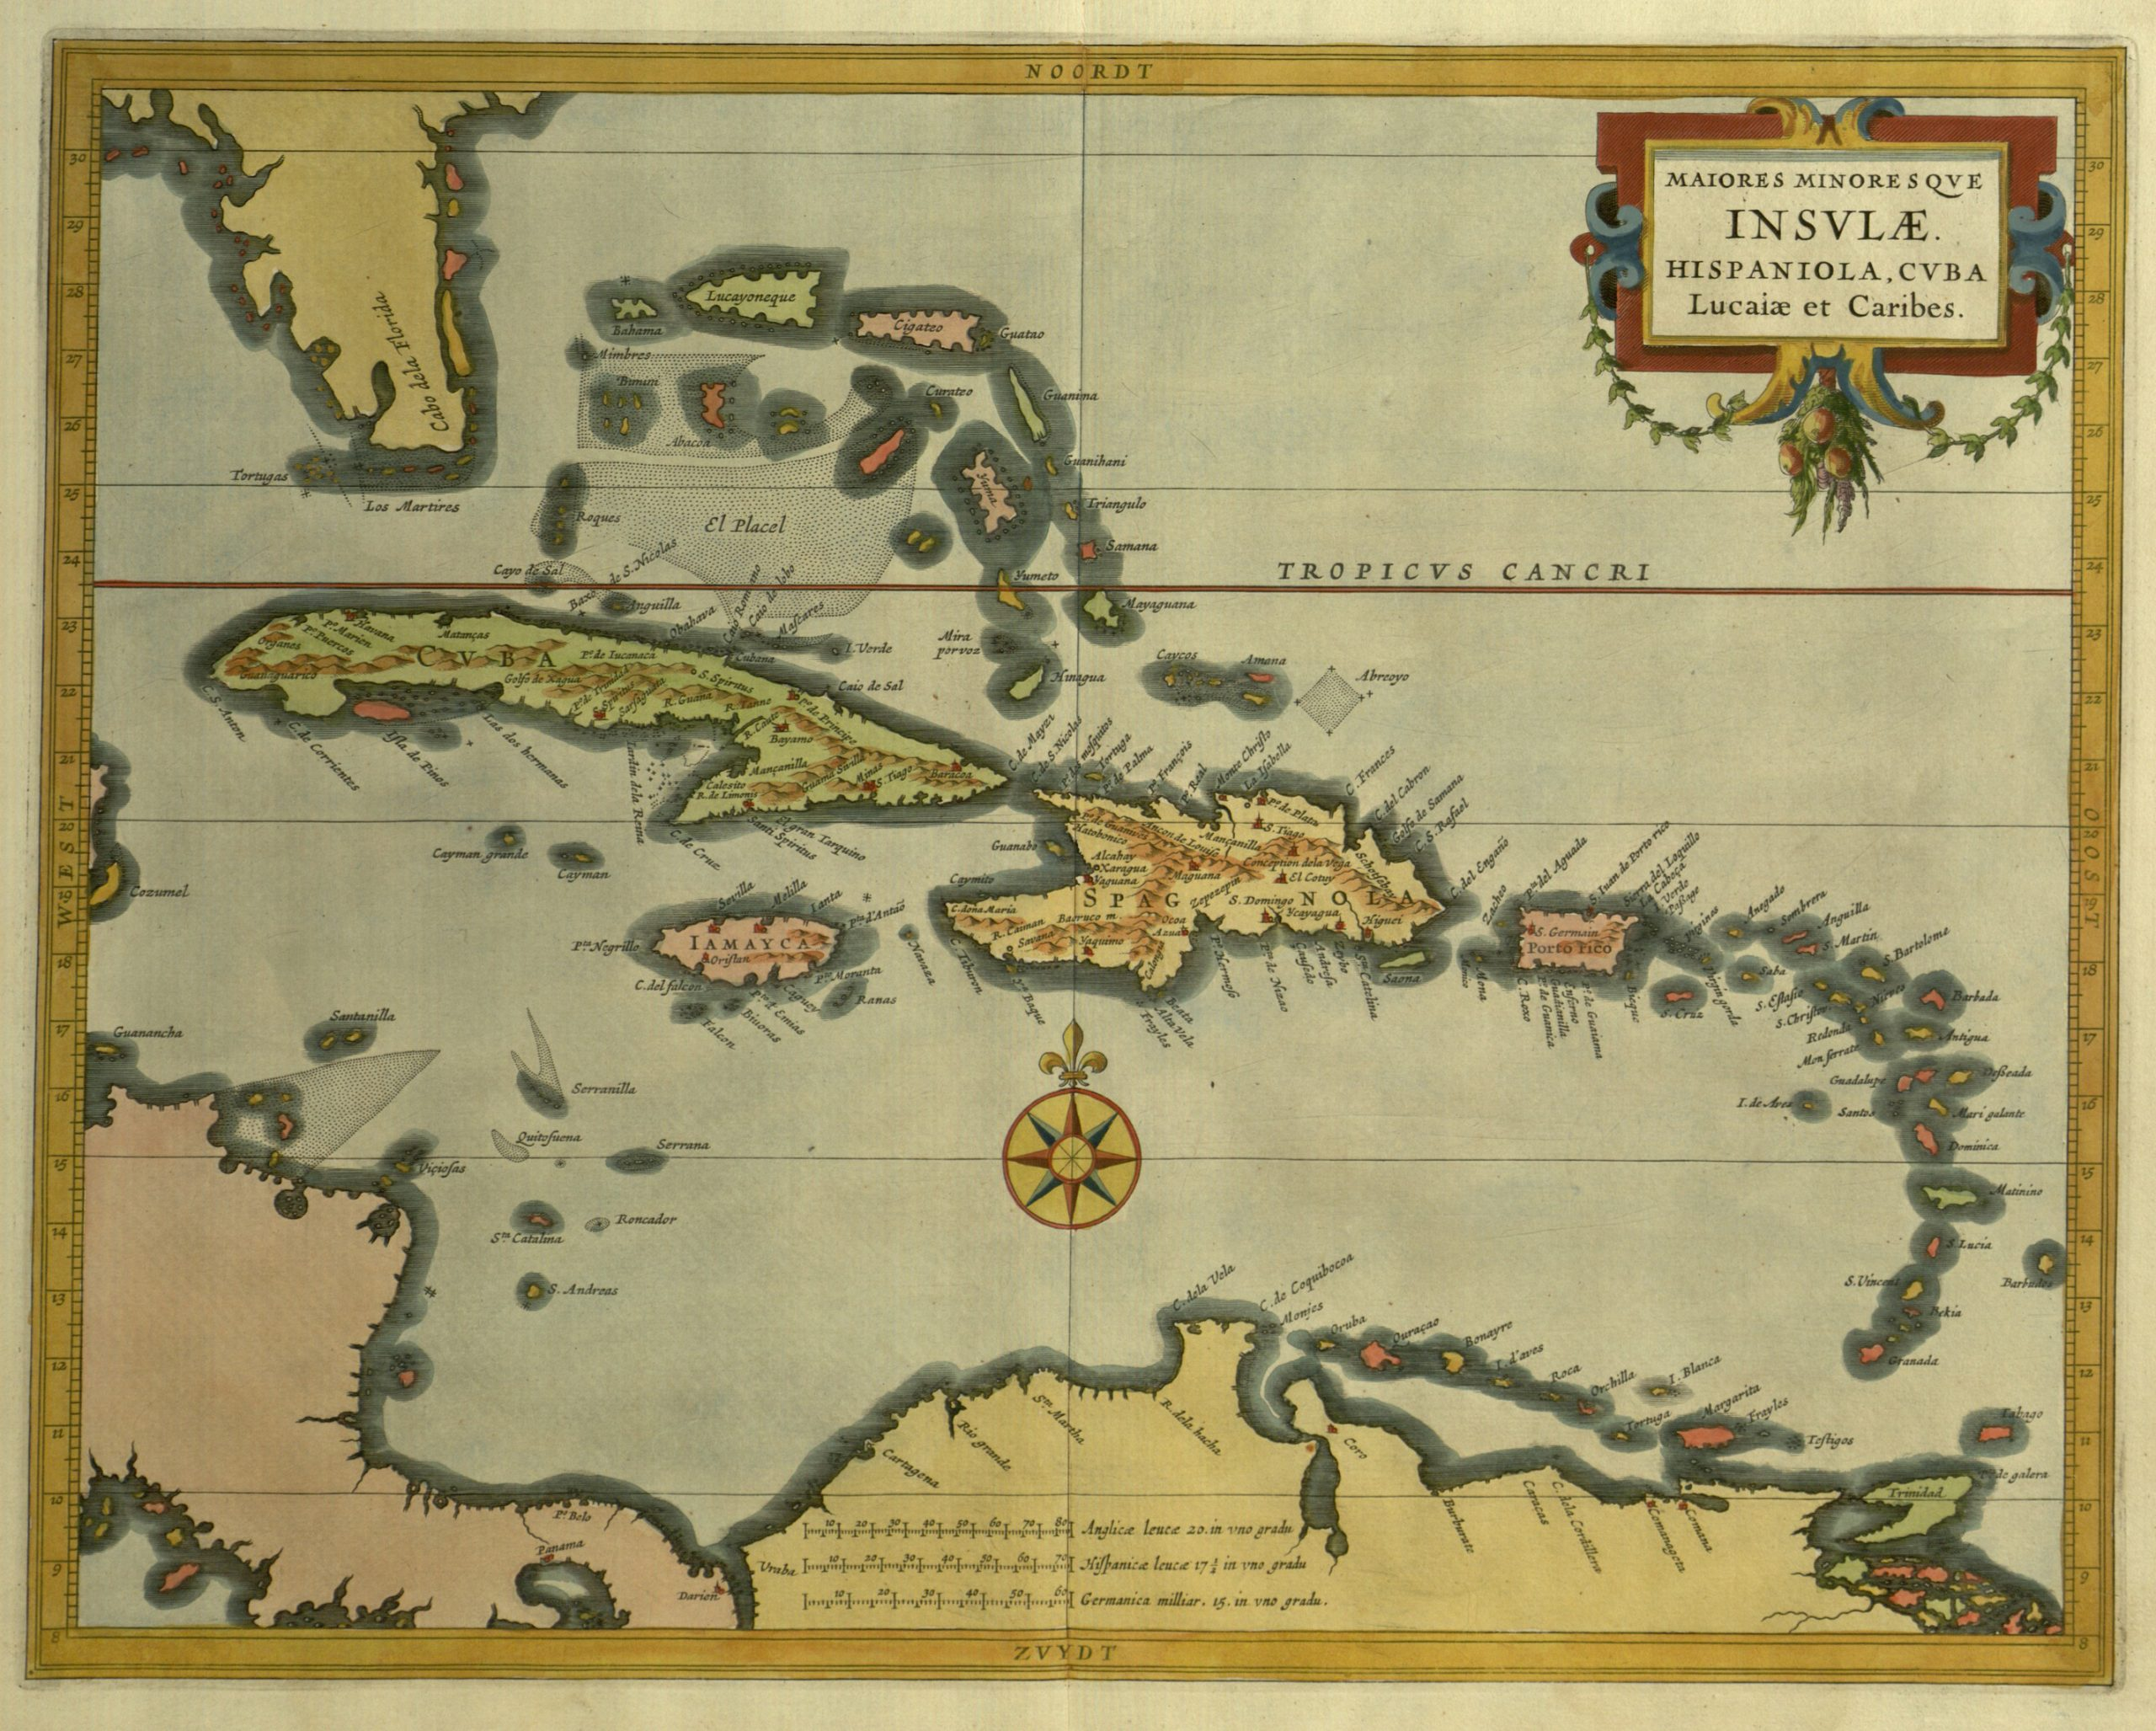 Map of Haiti from the John Smith Collection